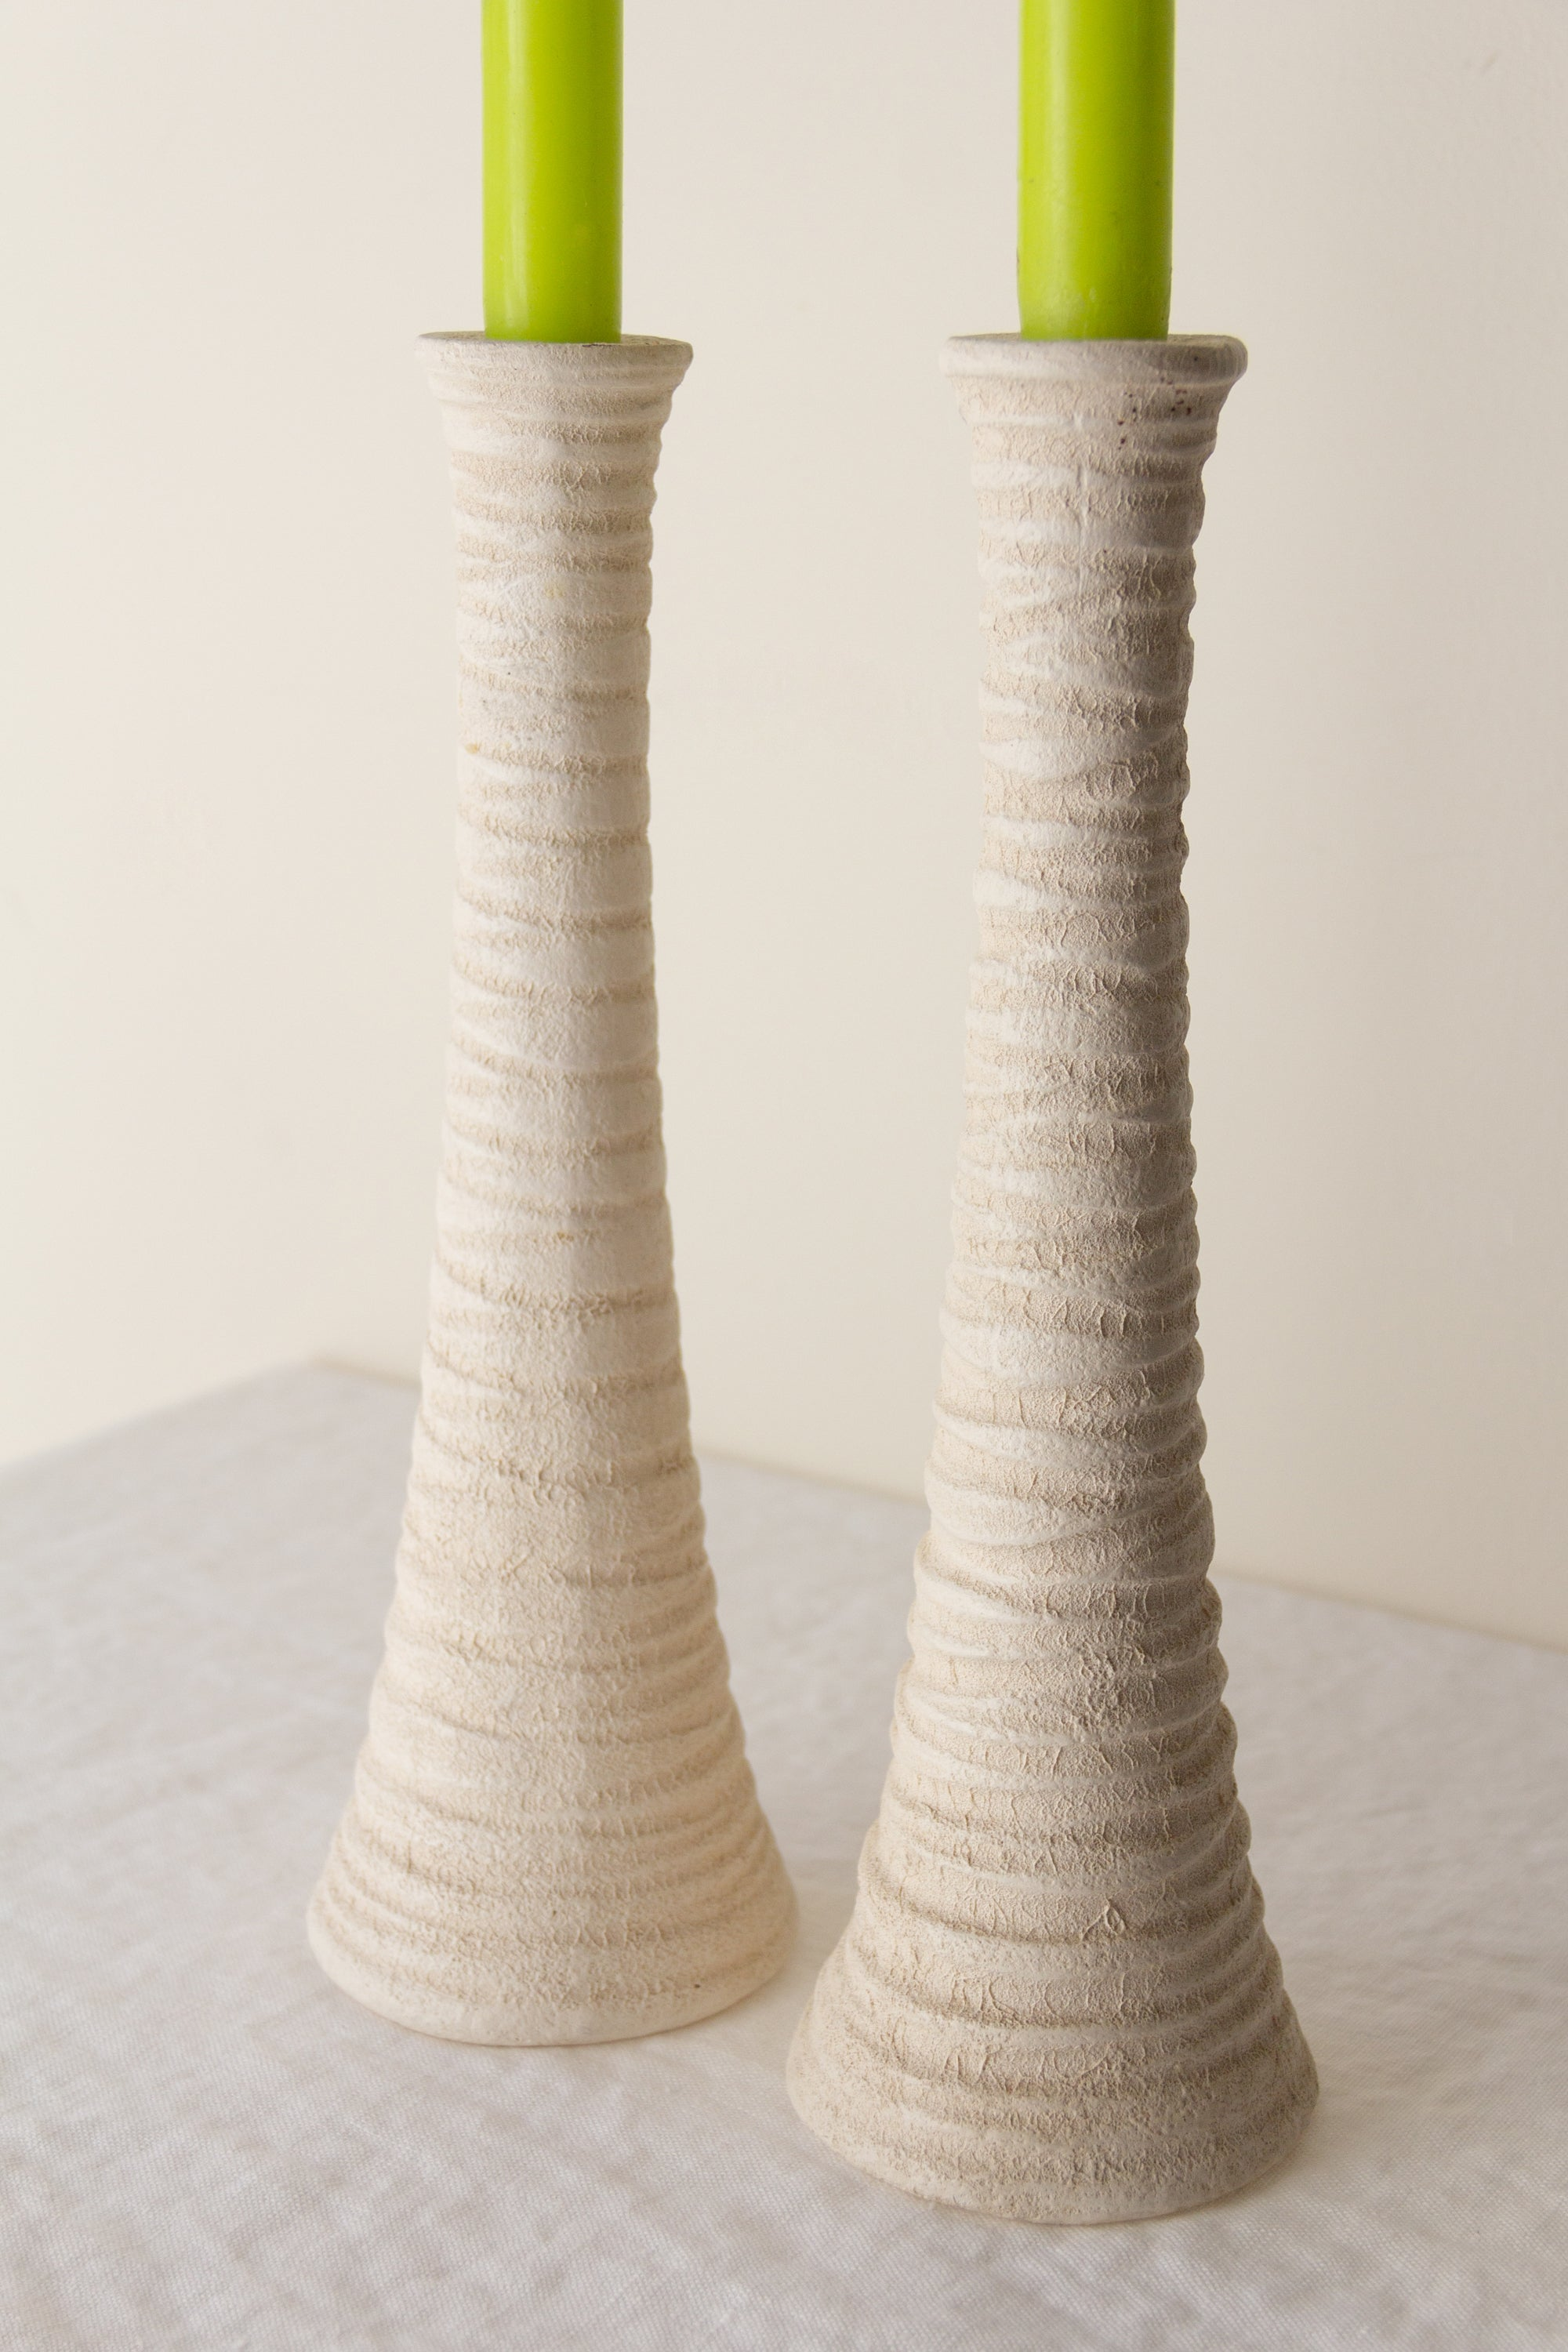 Natural Texture Ceramic Candlesticks